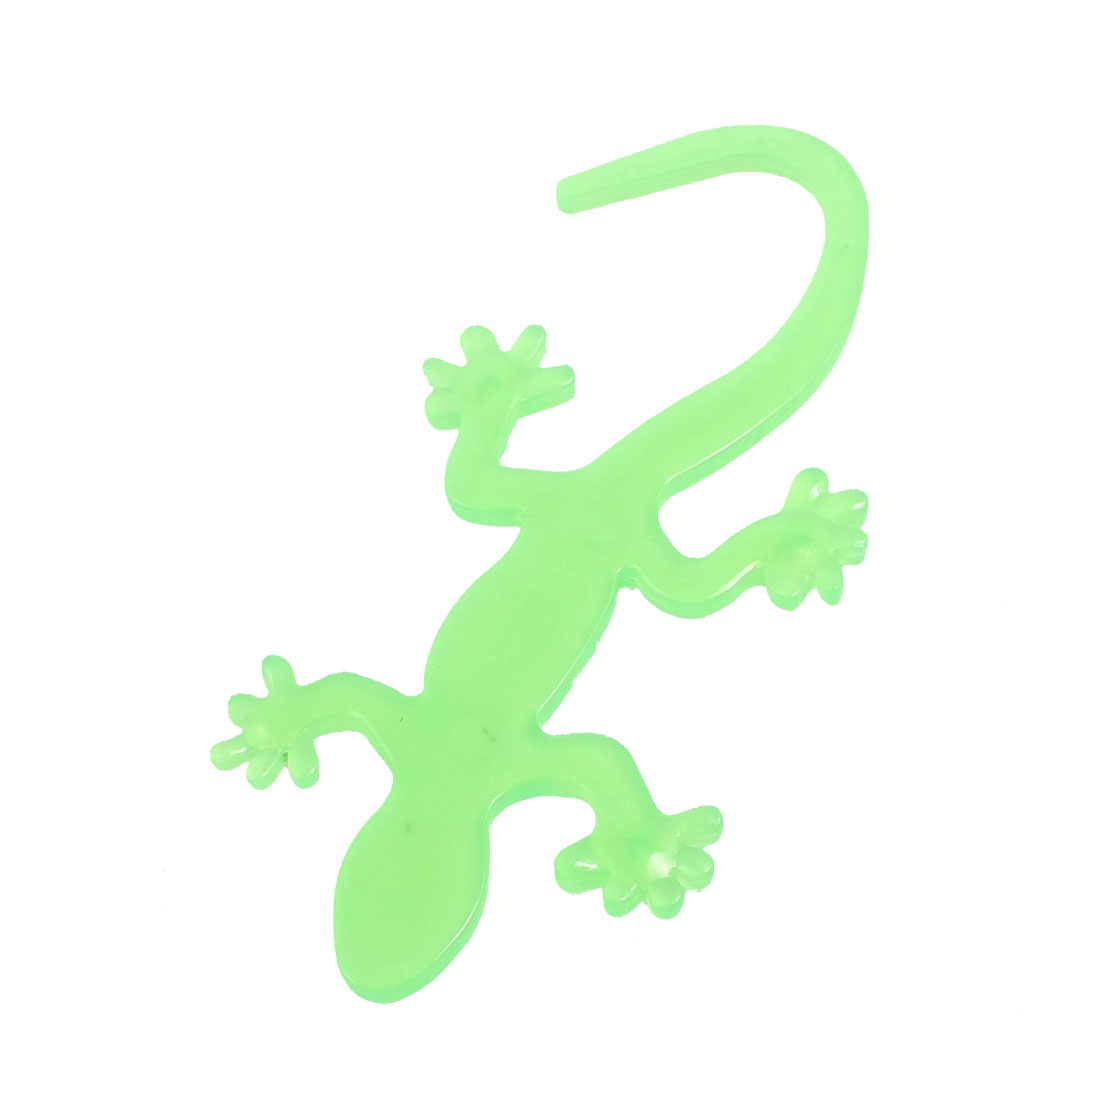 Clear Green Plastic Gecko Design 3D Sticker Badge for Car Vehicle